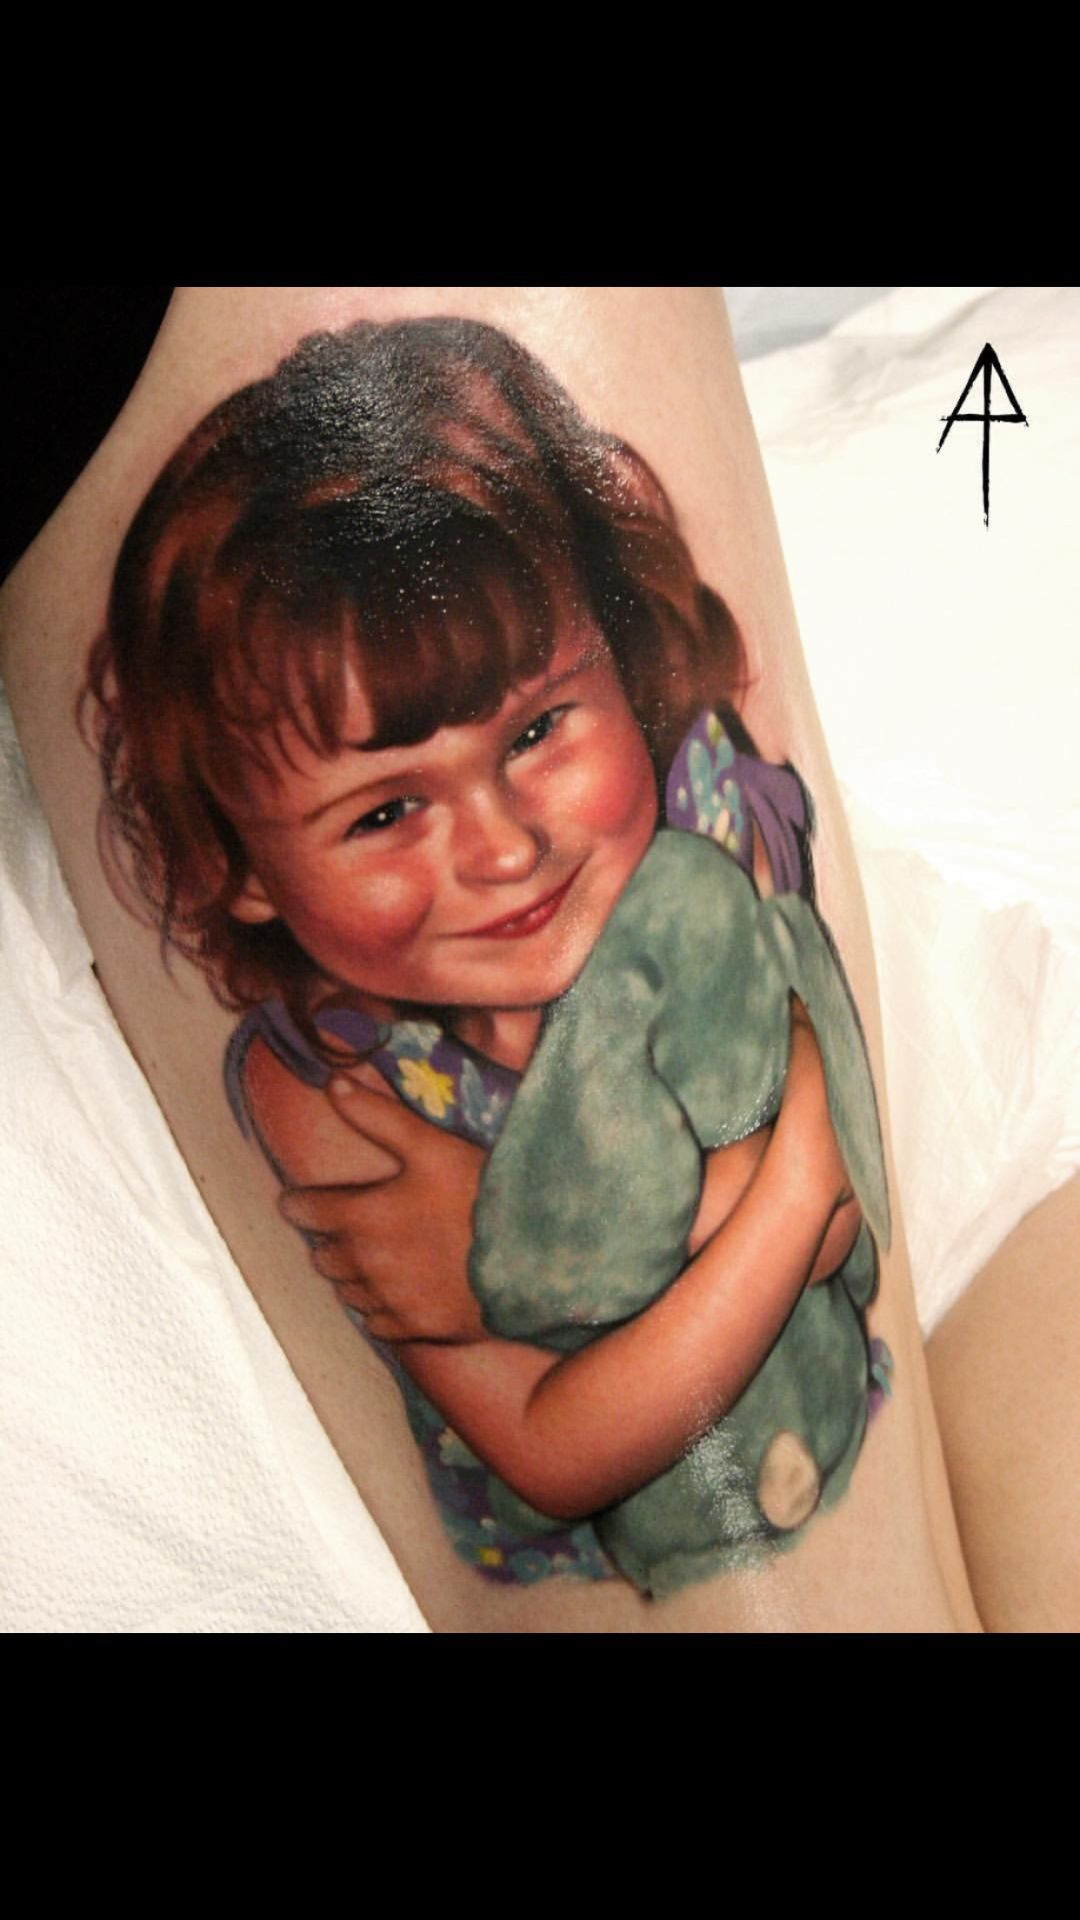 d62133bfc9c09 Gallery: Show us your tattoos! | Digital Exclusives: Photo Galleries ...